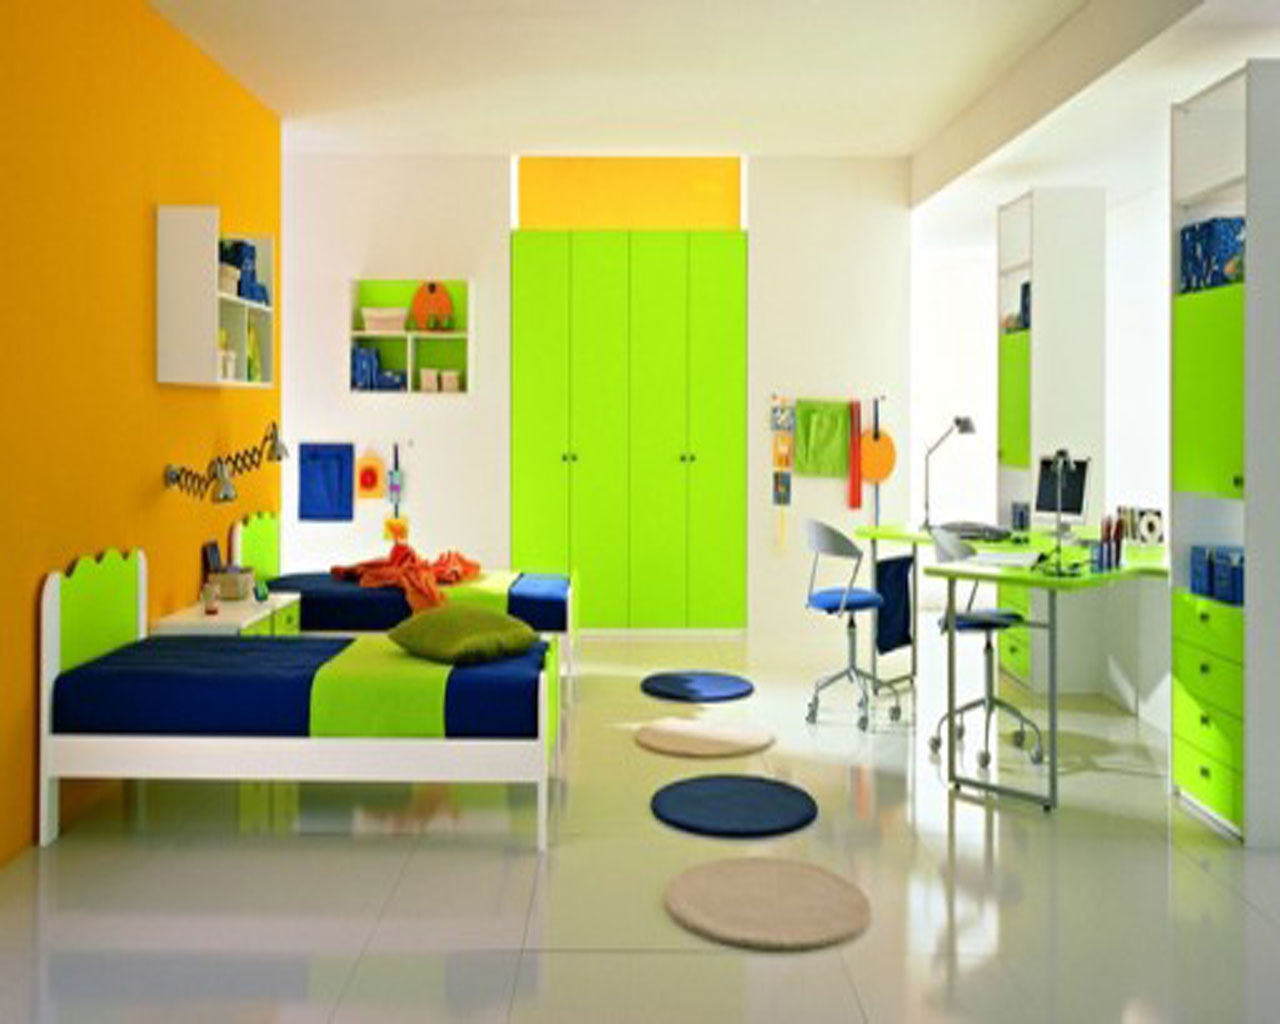 kids-room-decoration-ideas-of-green-home-exterior-interior-cool-boys-and-kids-bedroom-for-zen-landscape